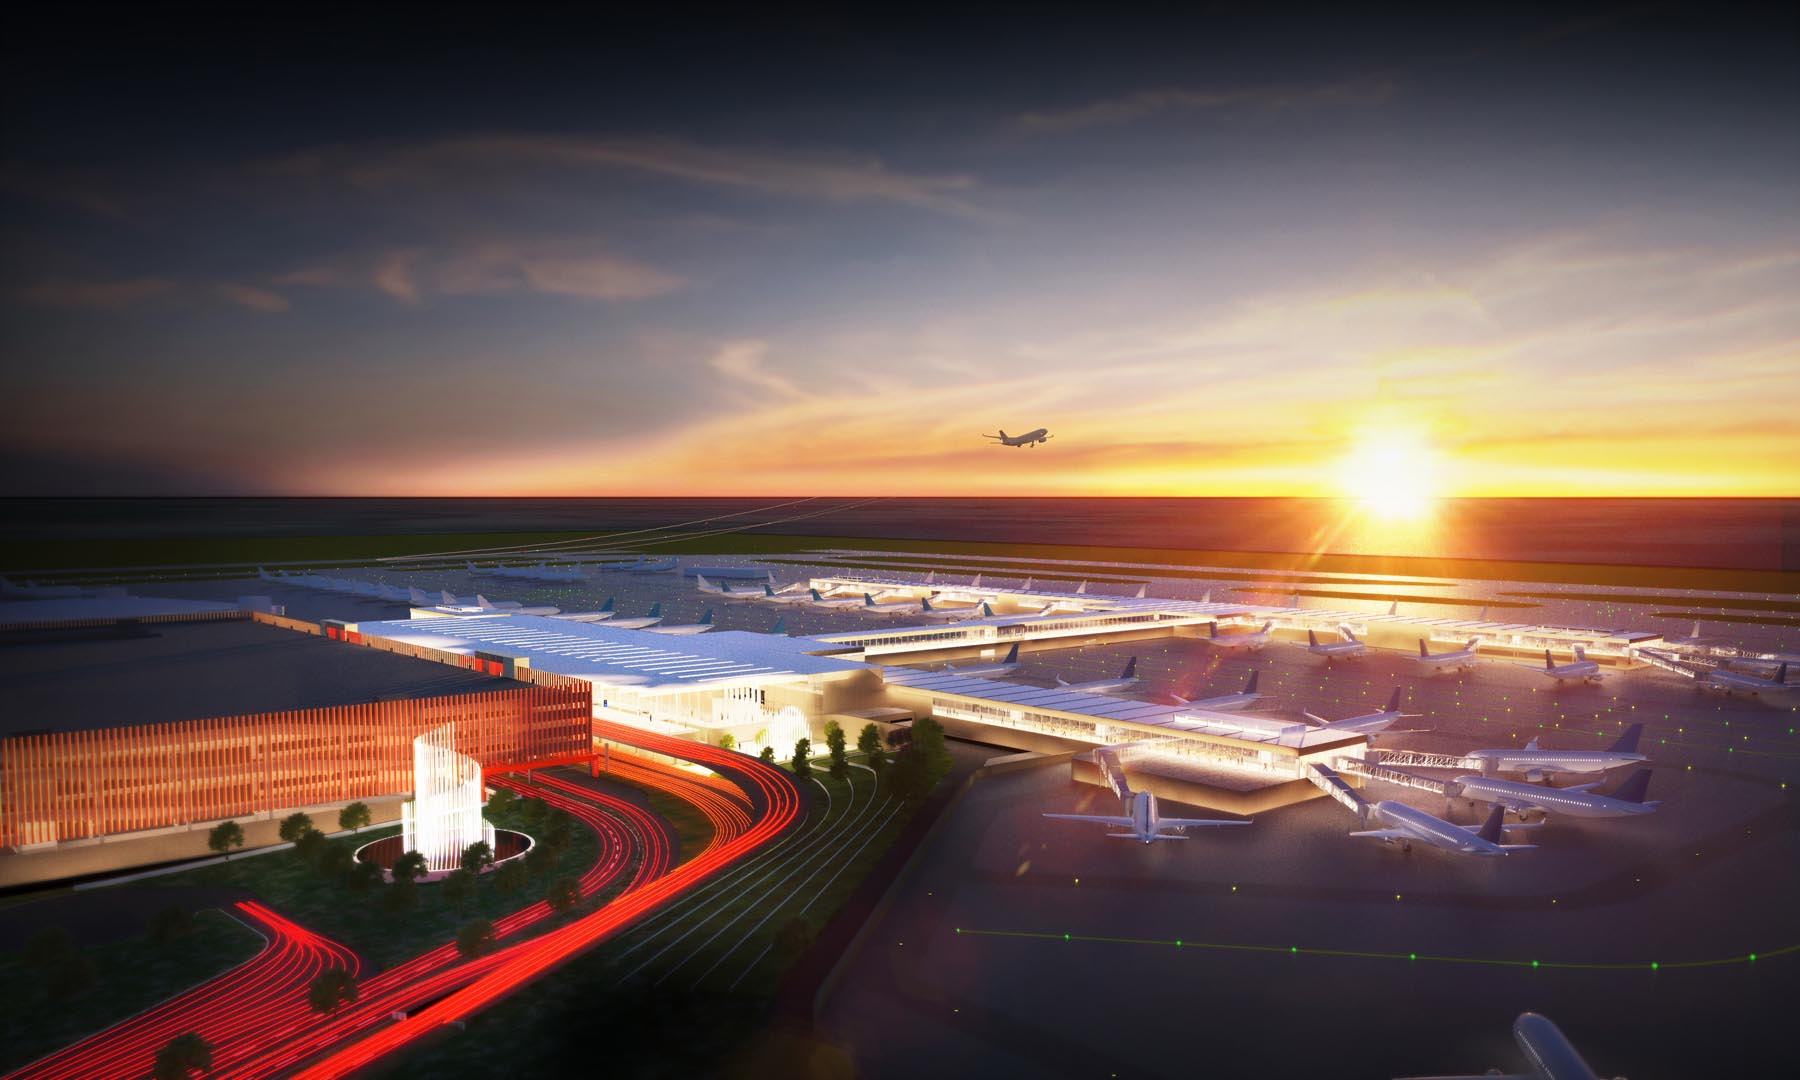 A modern new single terminal will soon take shape at Kansas City International Airport.